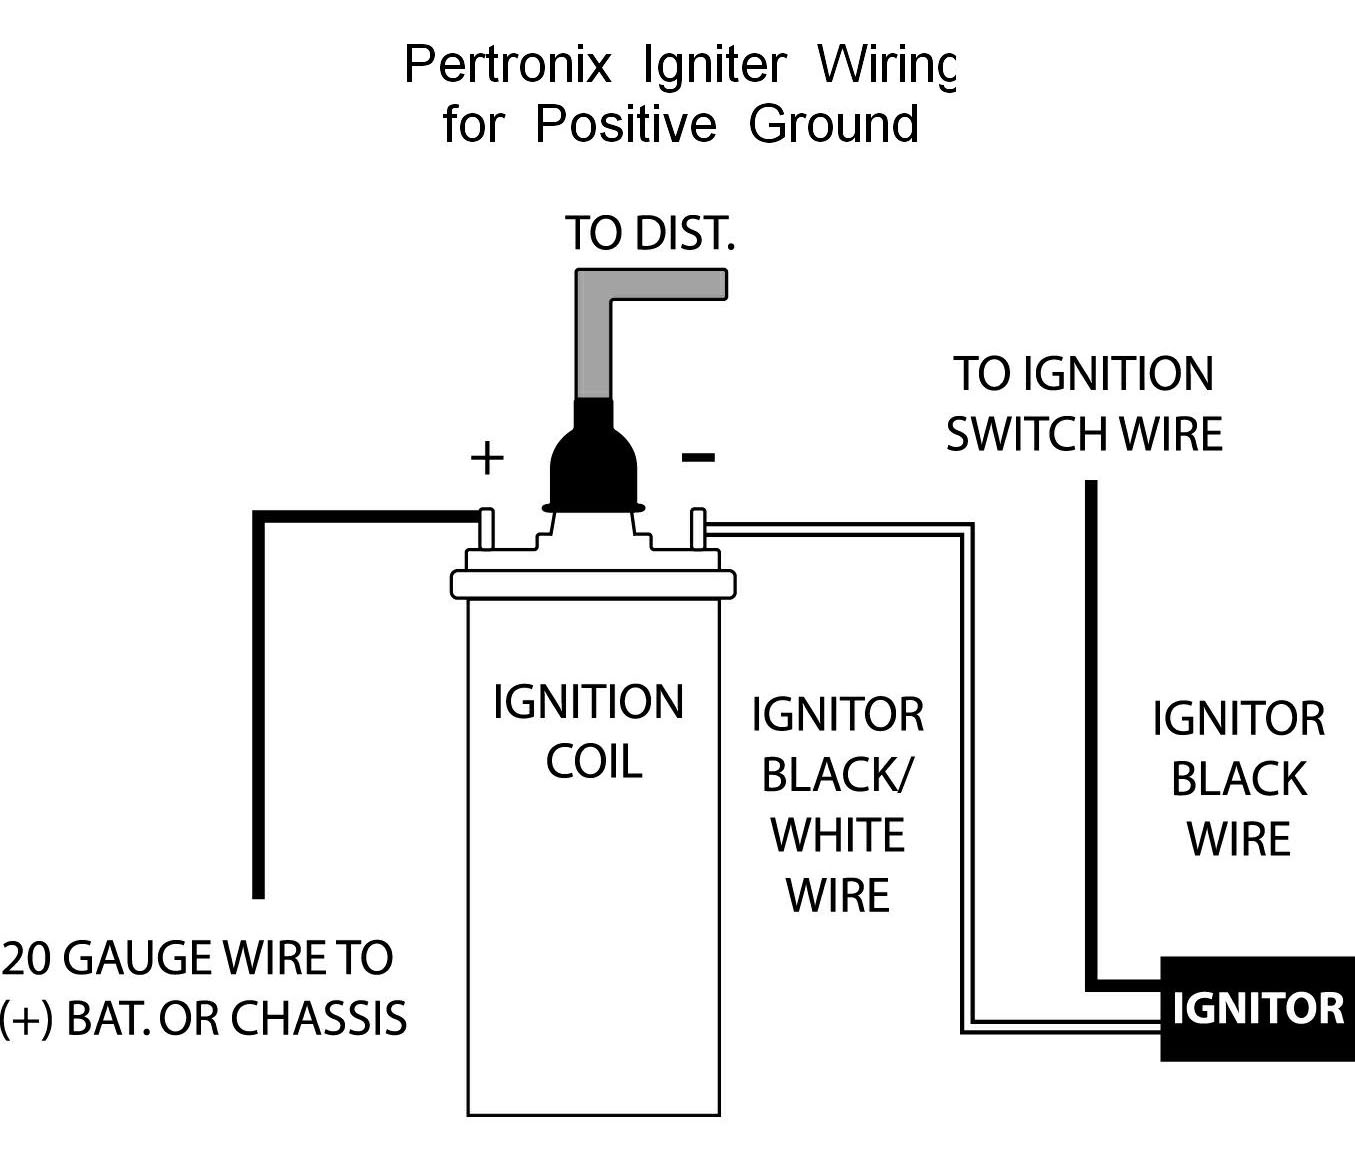 hight resolution of pertronix positive ground wiring ignitor pertronix d 57 2 wiring diagram